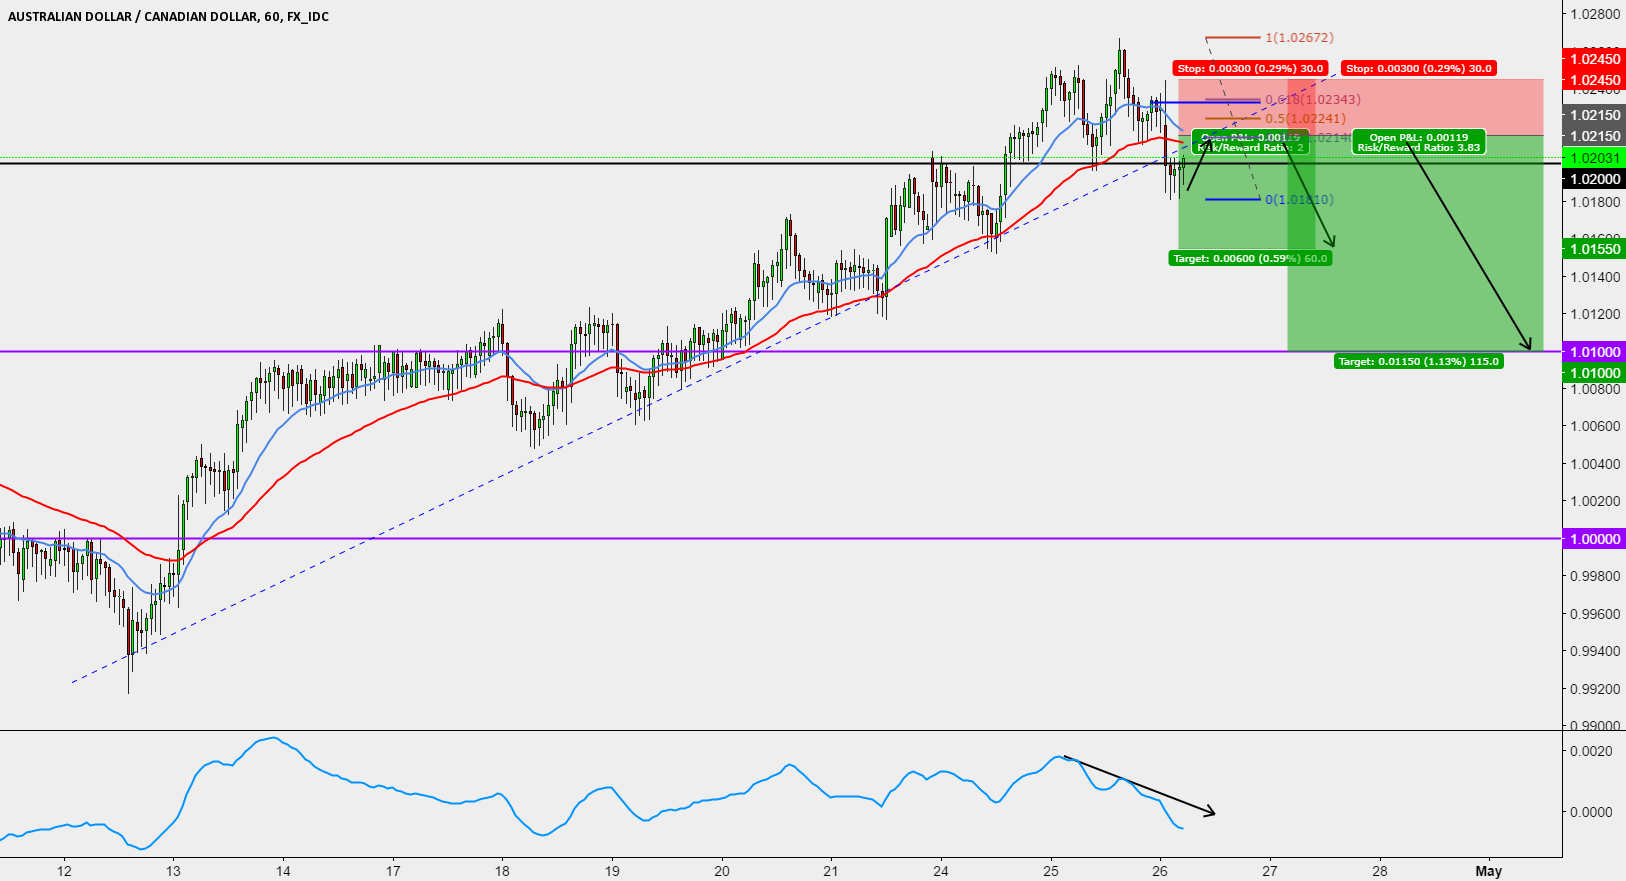 AUDCAD SHORT TRADE SETUP